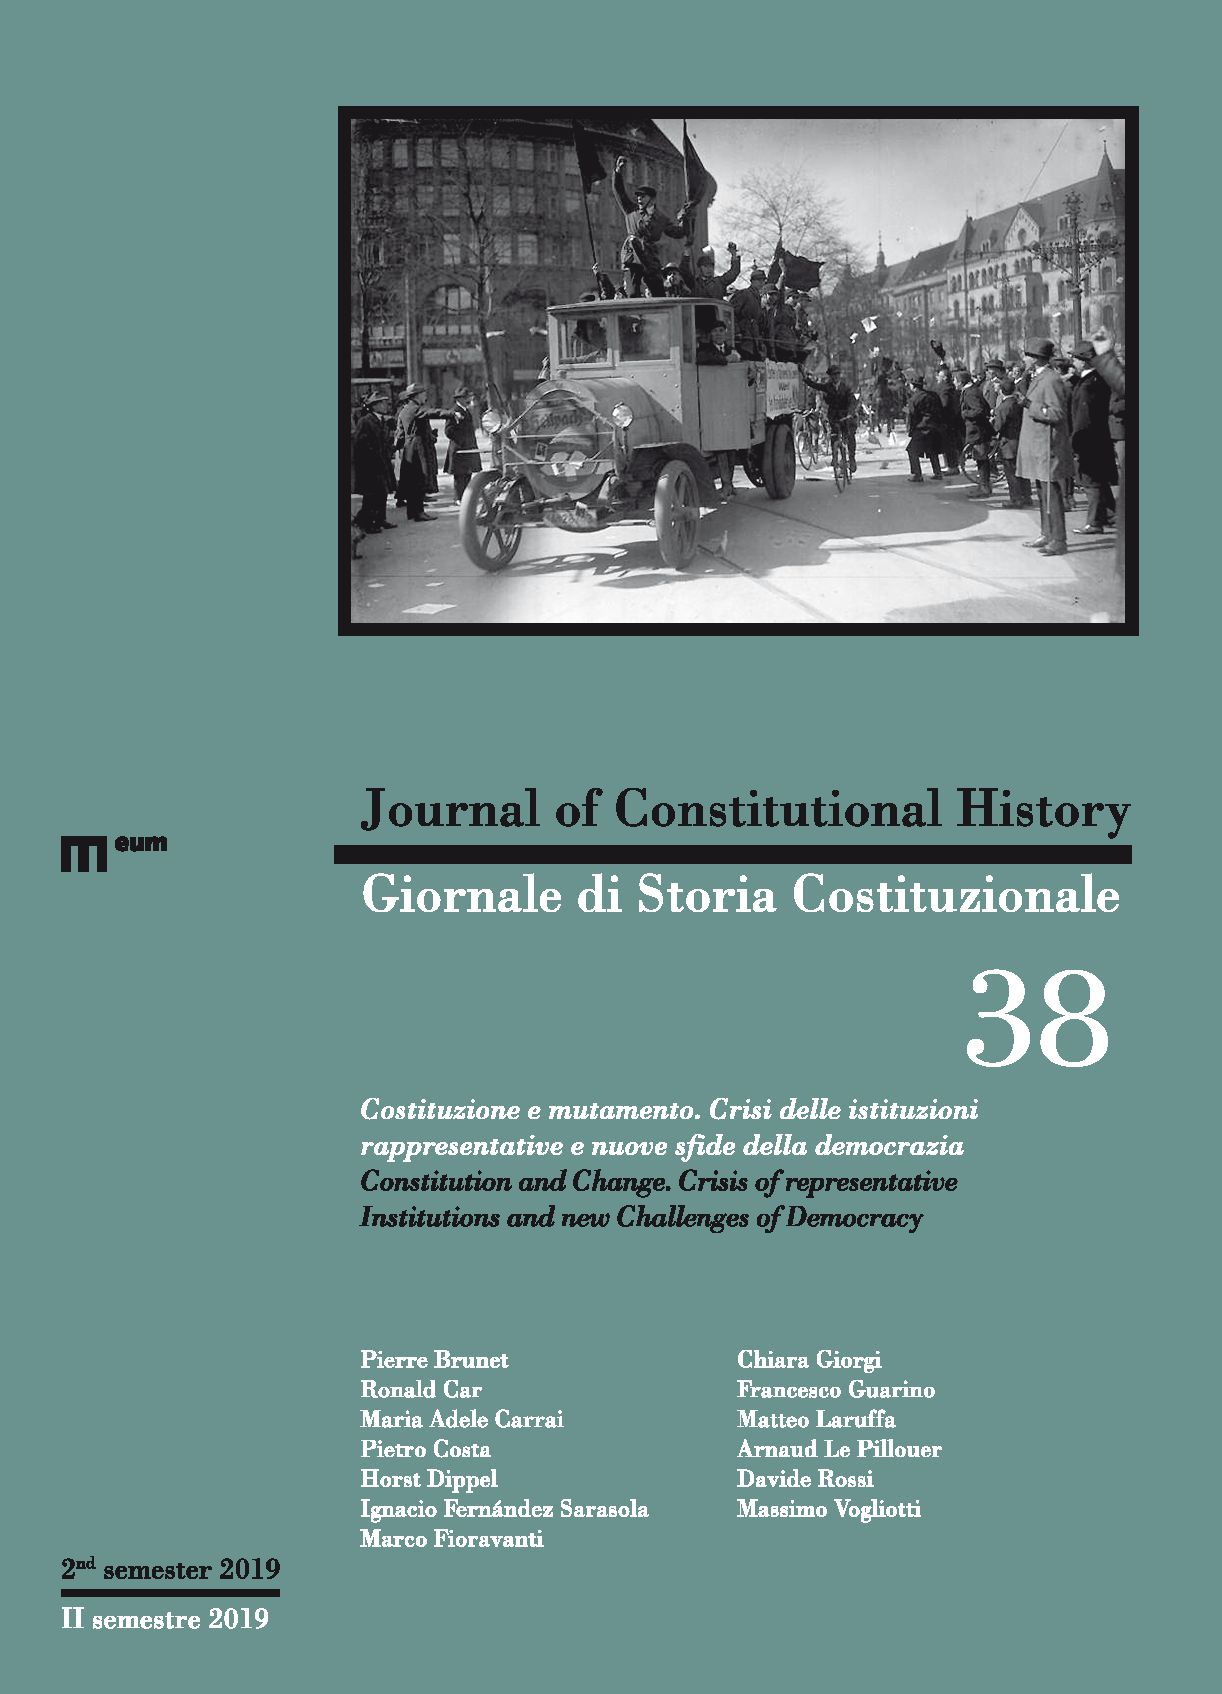 Journal of Constitutional History / Giornale di Storia Costituzionale n. 38, 2/2019